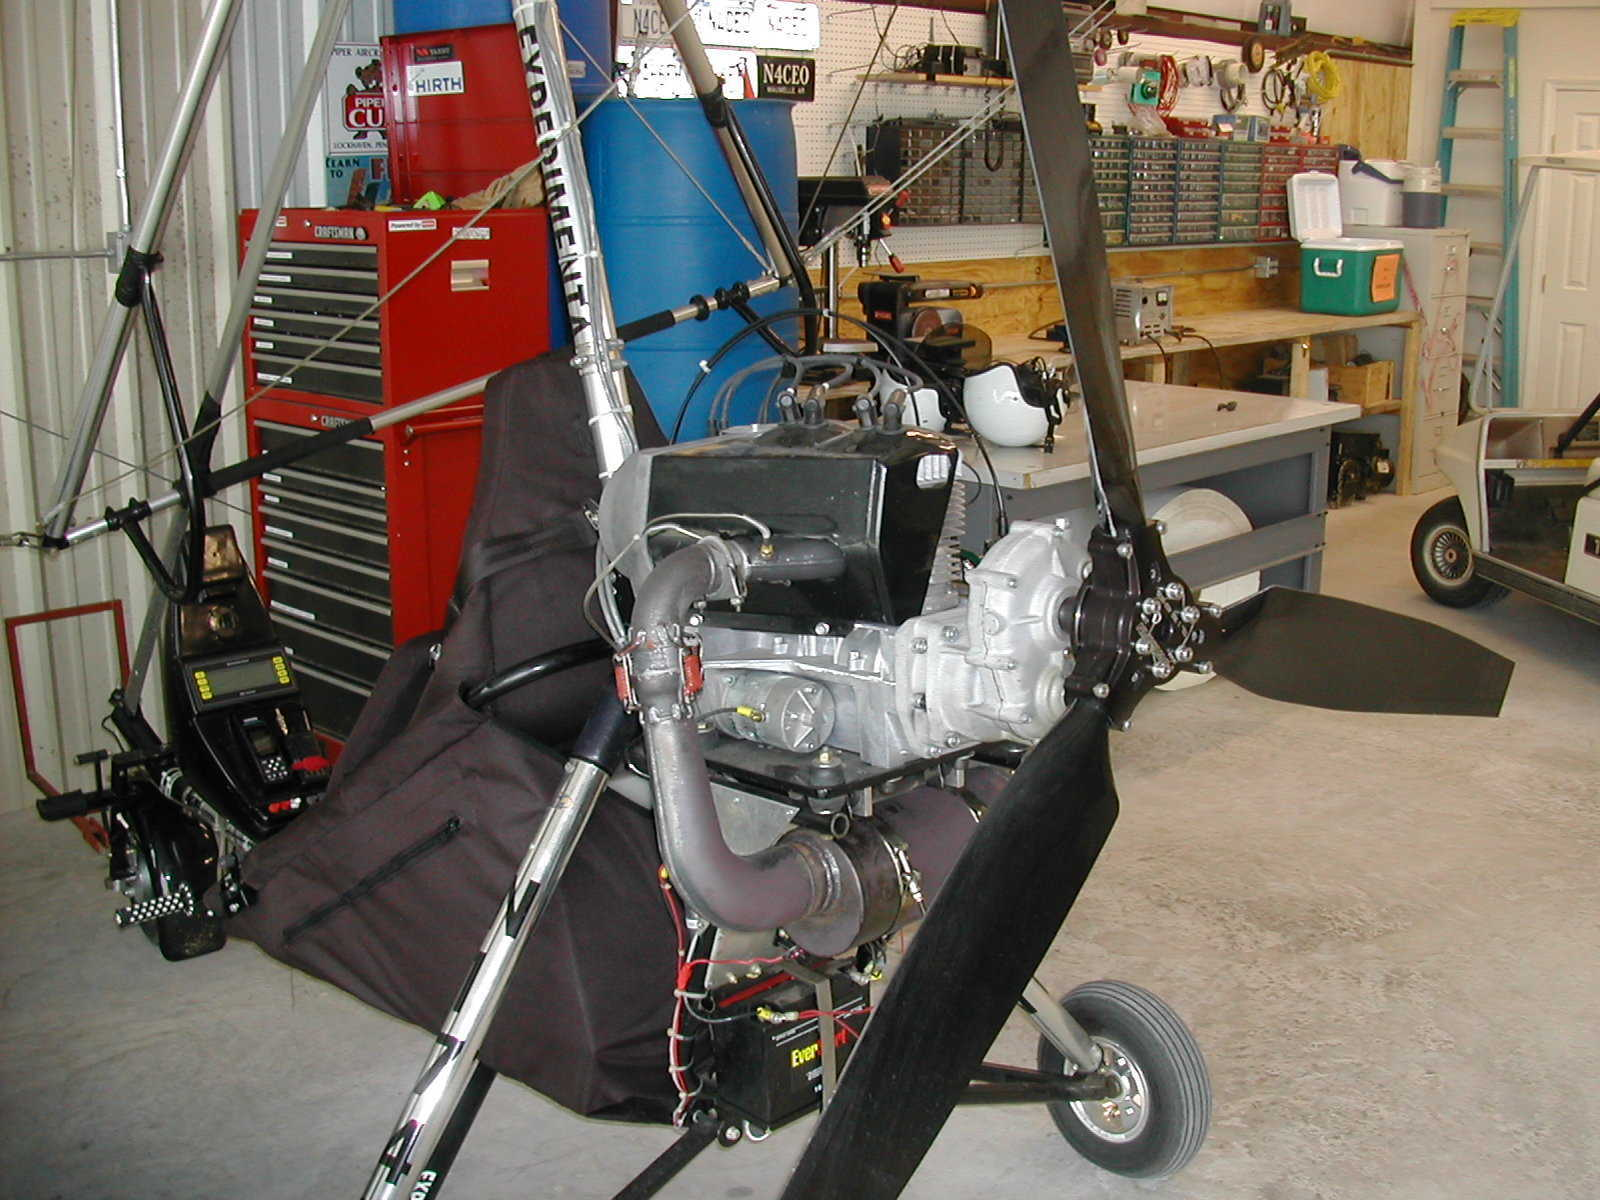 As a replacement option for the Rotax 503 in a Tryke, the Hirth 3202 offers lighter weitht, with greater horsepower and torque at a lower rpm. This allows cruising with less vibration, lower noise levels, creating greater fuel economy and longer TBO